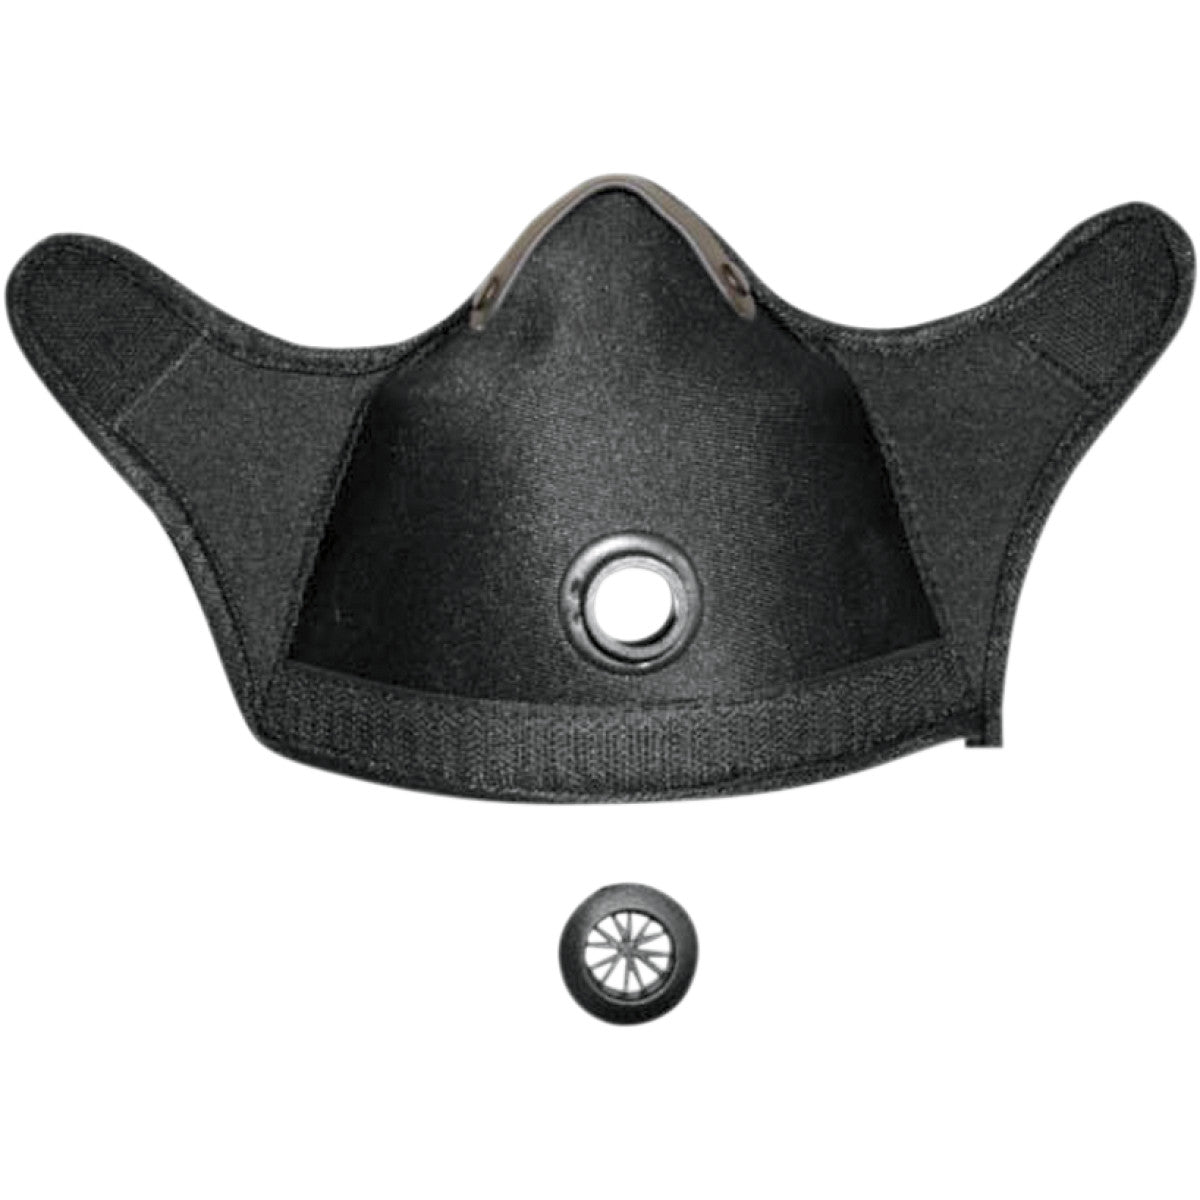 AFX HELMET SHIELDS AND ACCESSORIES